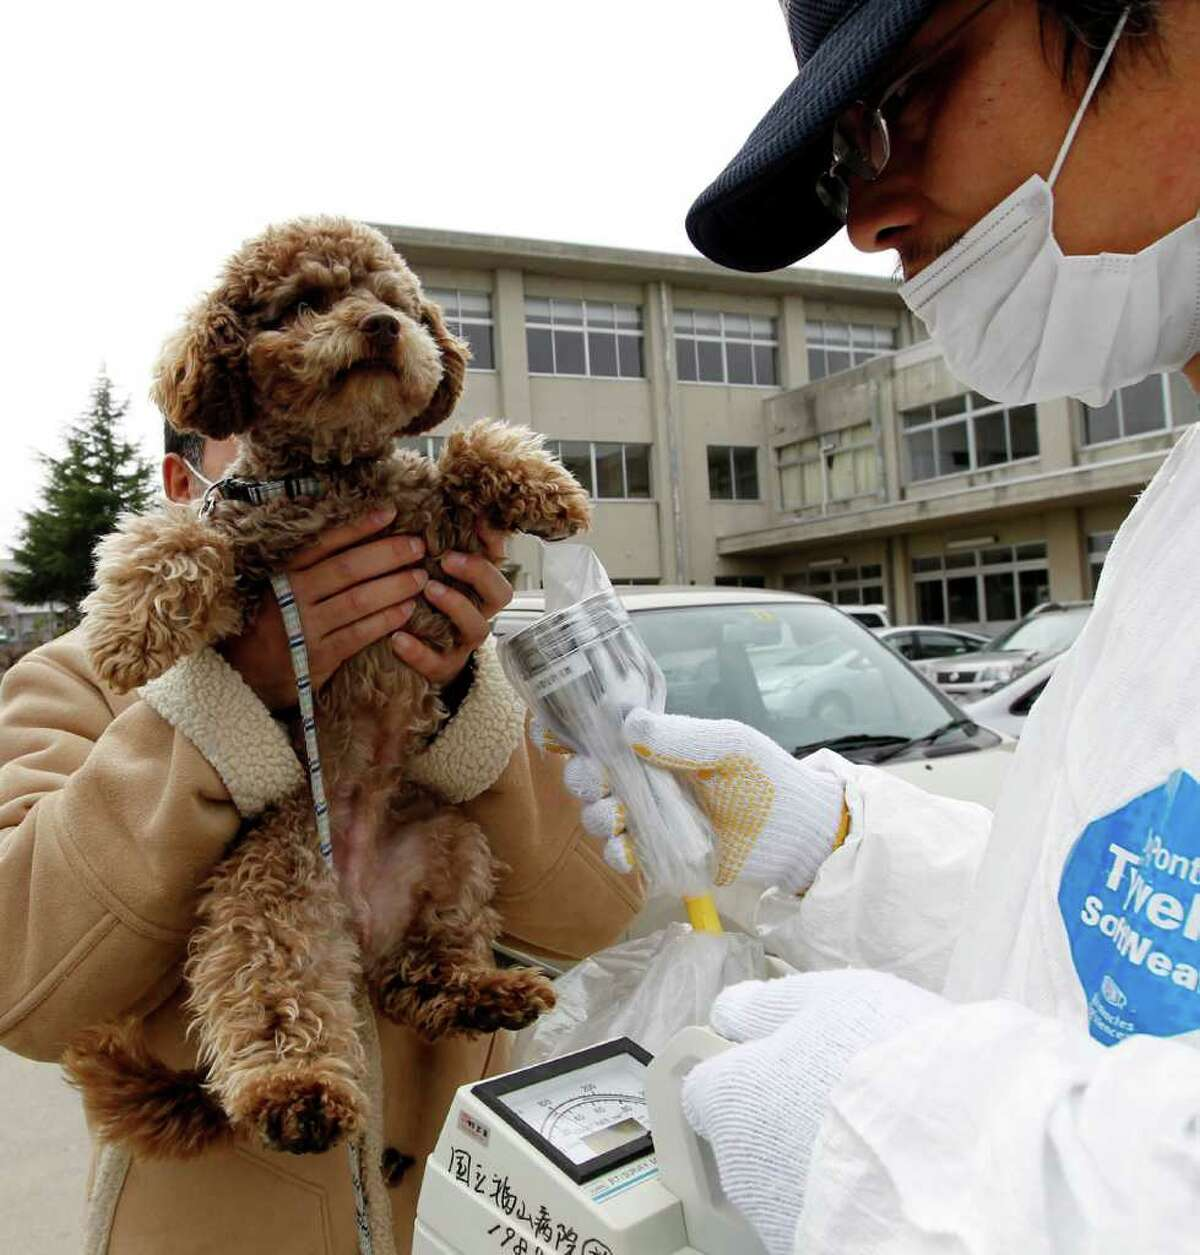 An official in a radiation protection suit scans a dog with a Geiger counter at a shelter in Koriyama in Fukushima prefecture, 60 kms west from the Fukushima nuclear power plant in Japan.